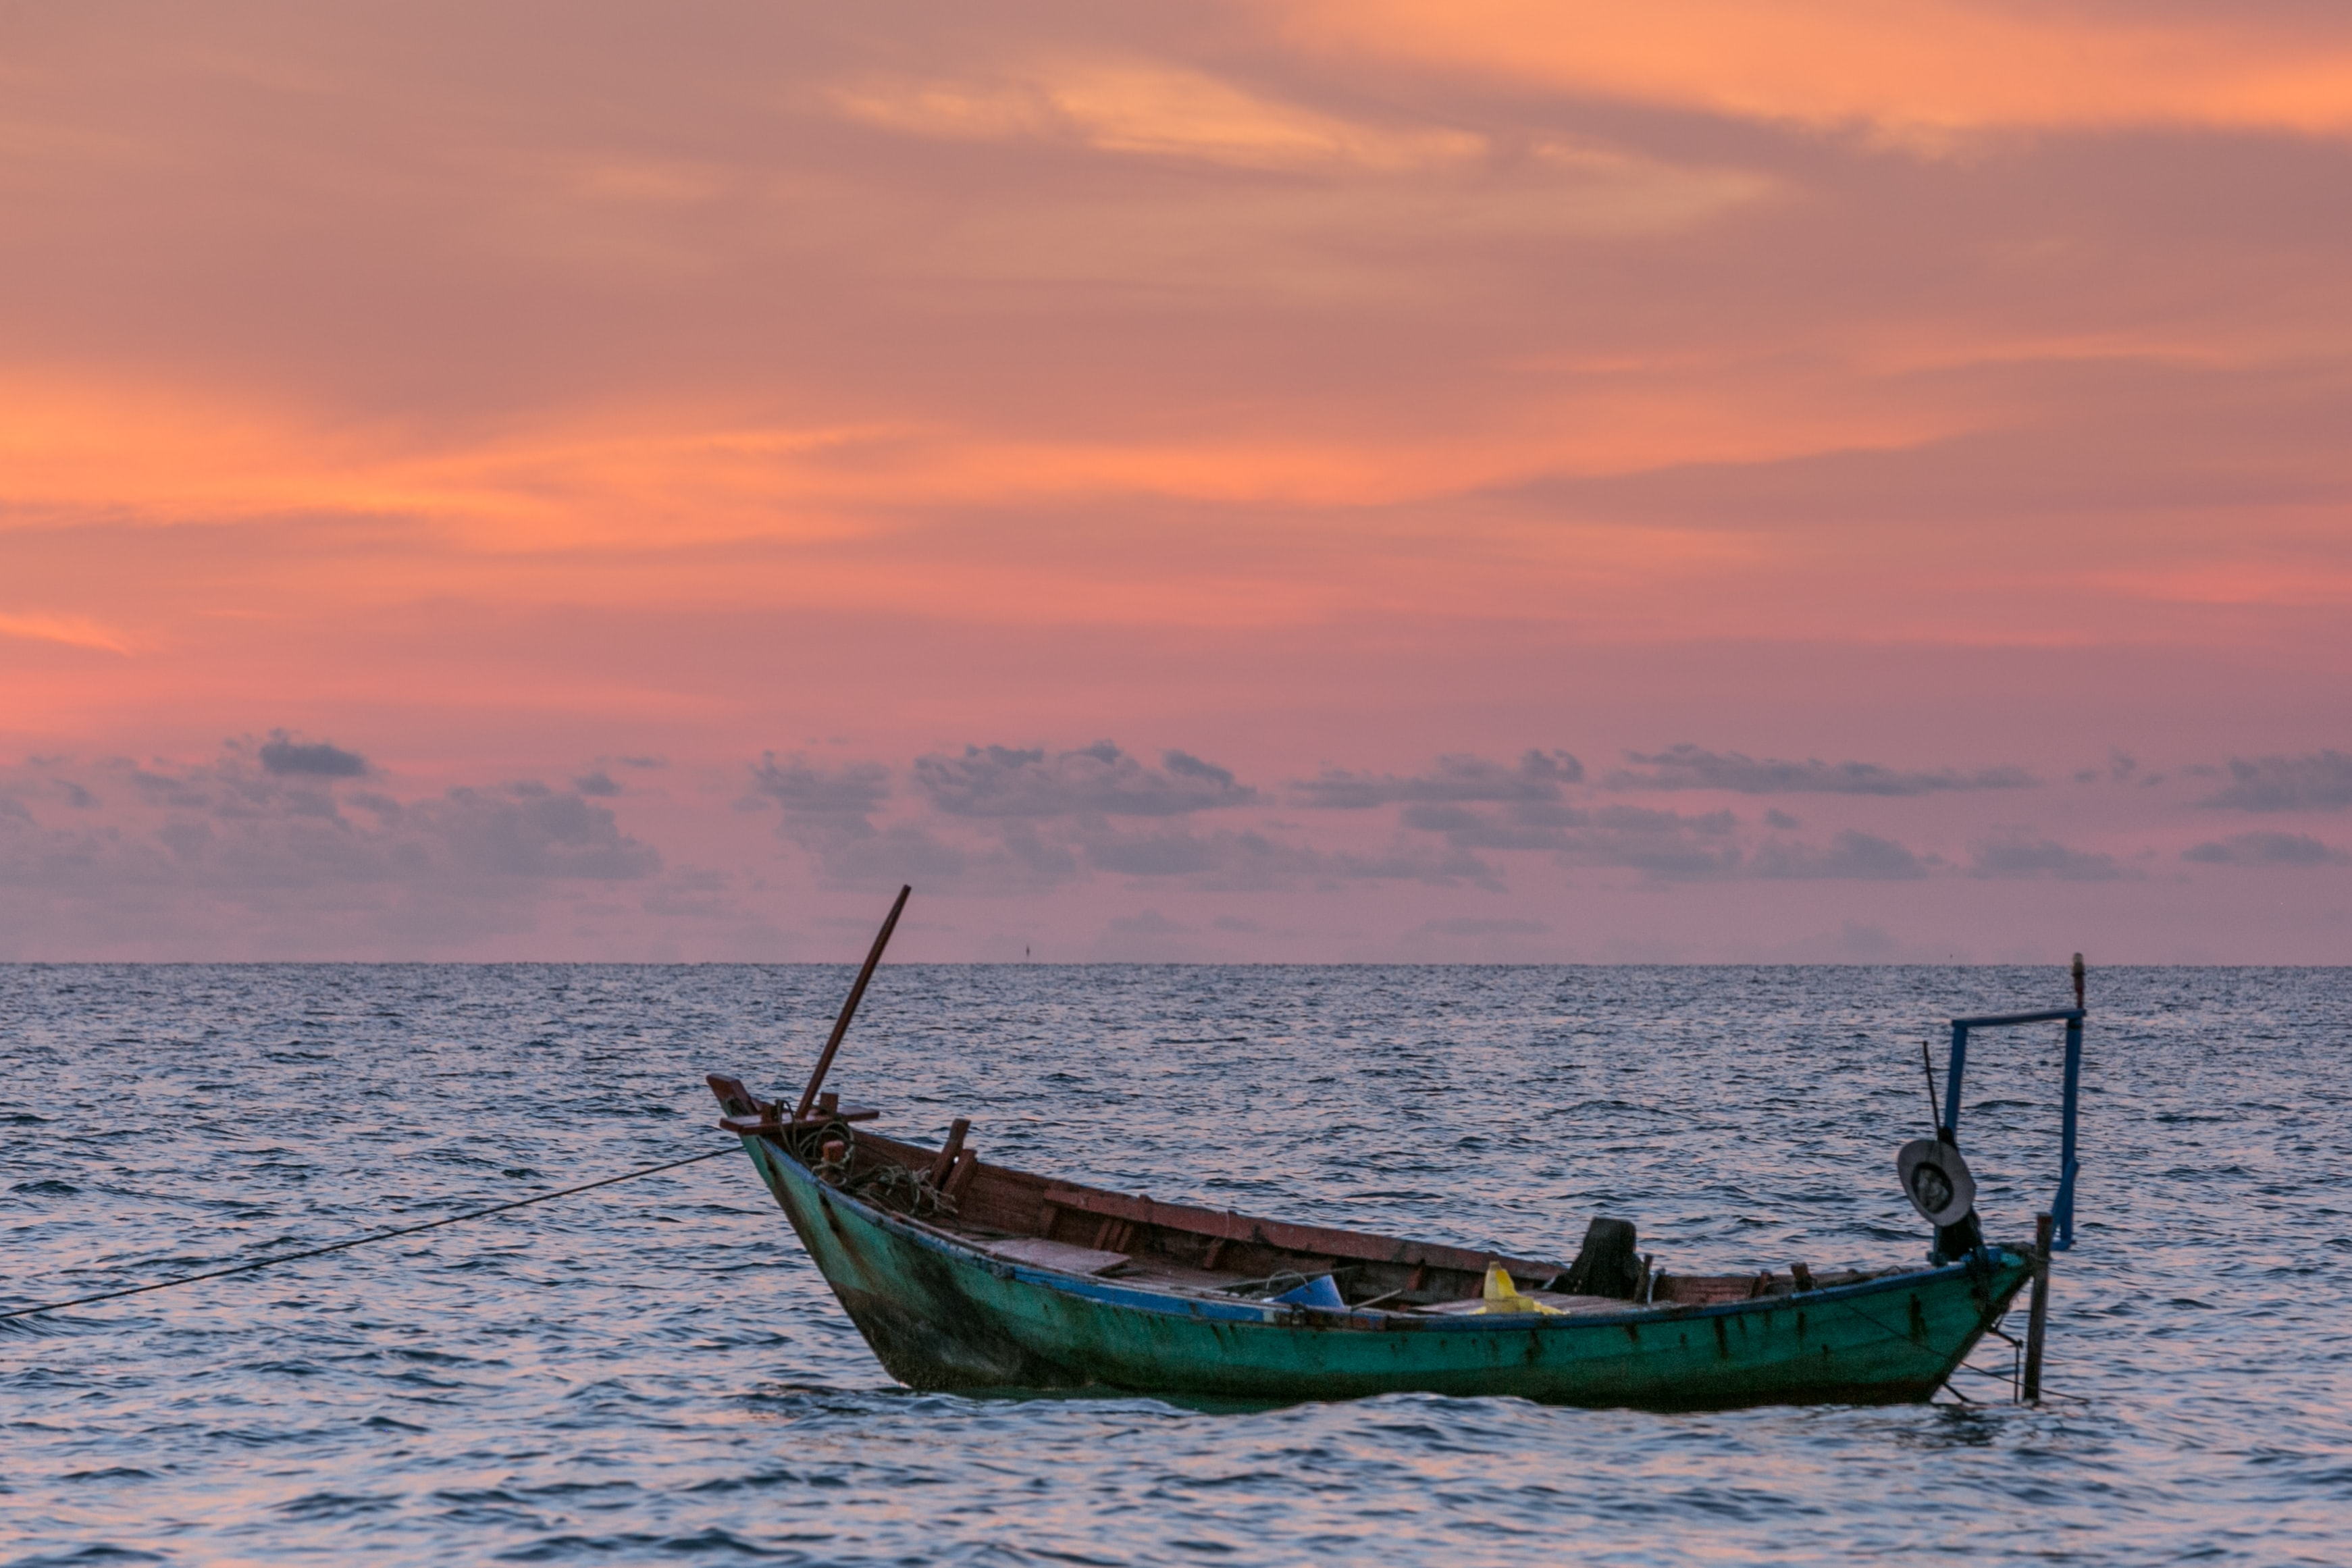 A lone green boat sitting tethered in the ocean, with low clouds at the horizon during sunset